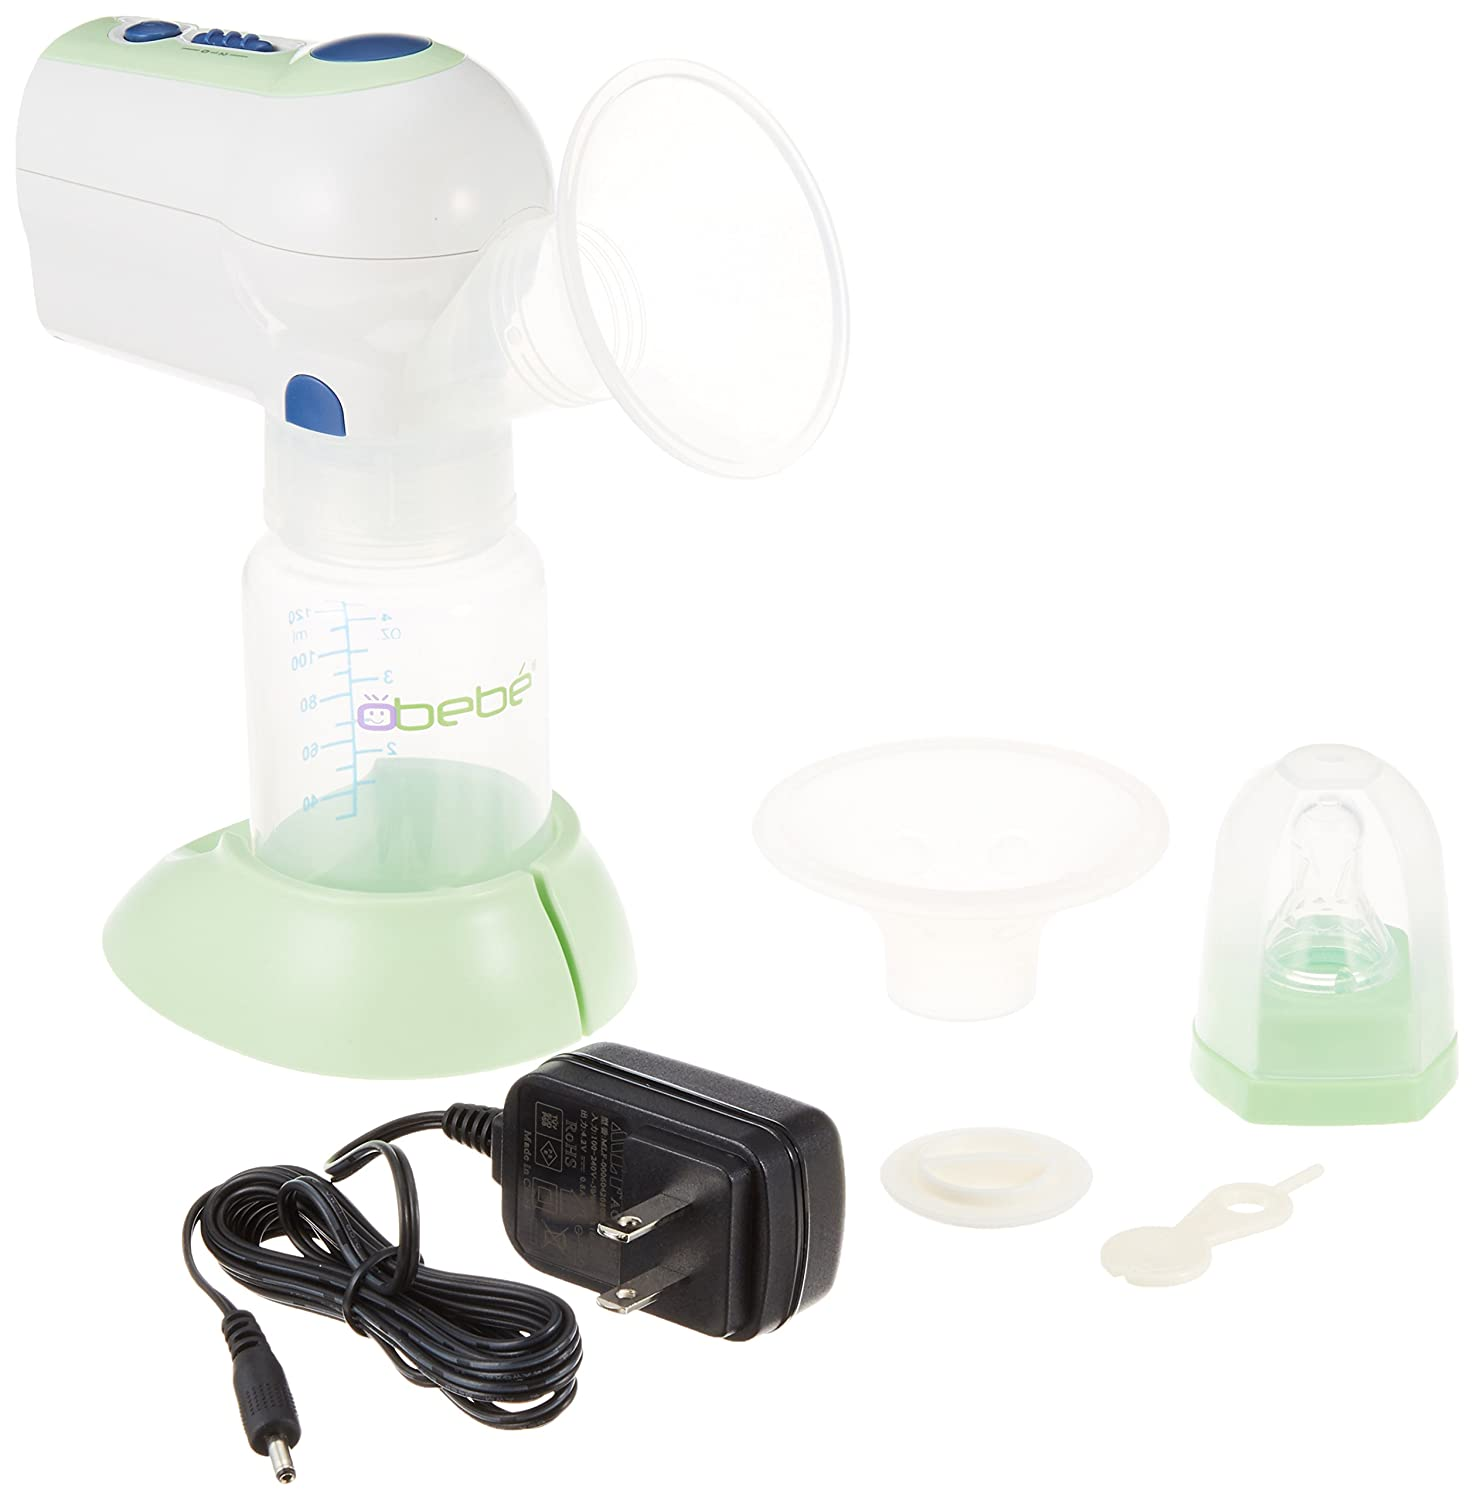 Buy Bremed Bd 3300 Proffesional Electronic Portable Breast Pump Obebe 3 Levels Rechargeable Battery Online At Low Prices In India